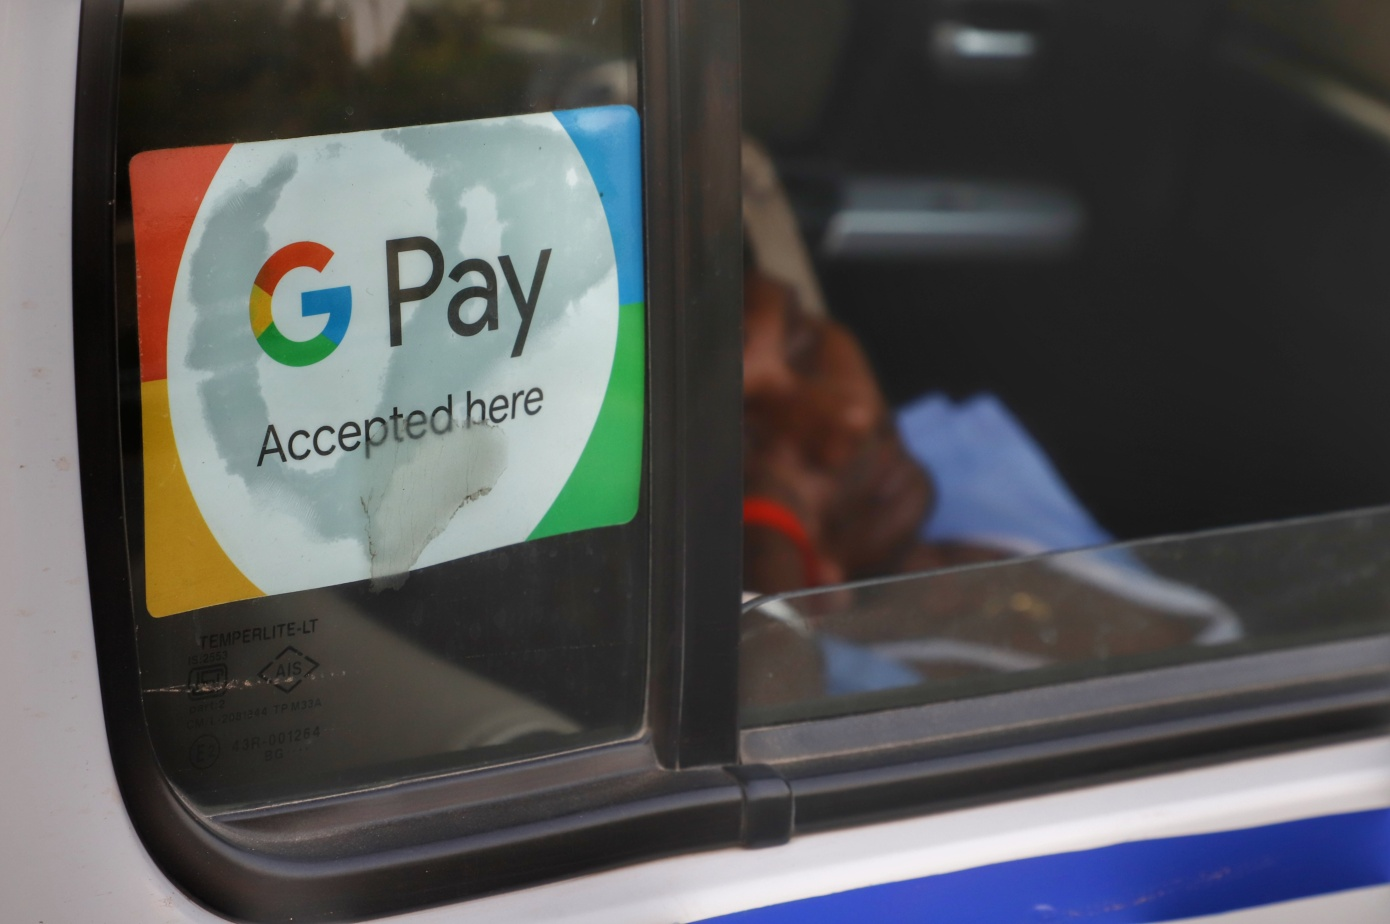 Google paves way to tap Pay users' data in India